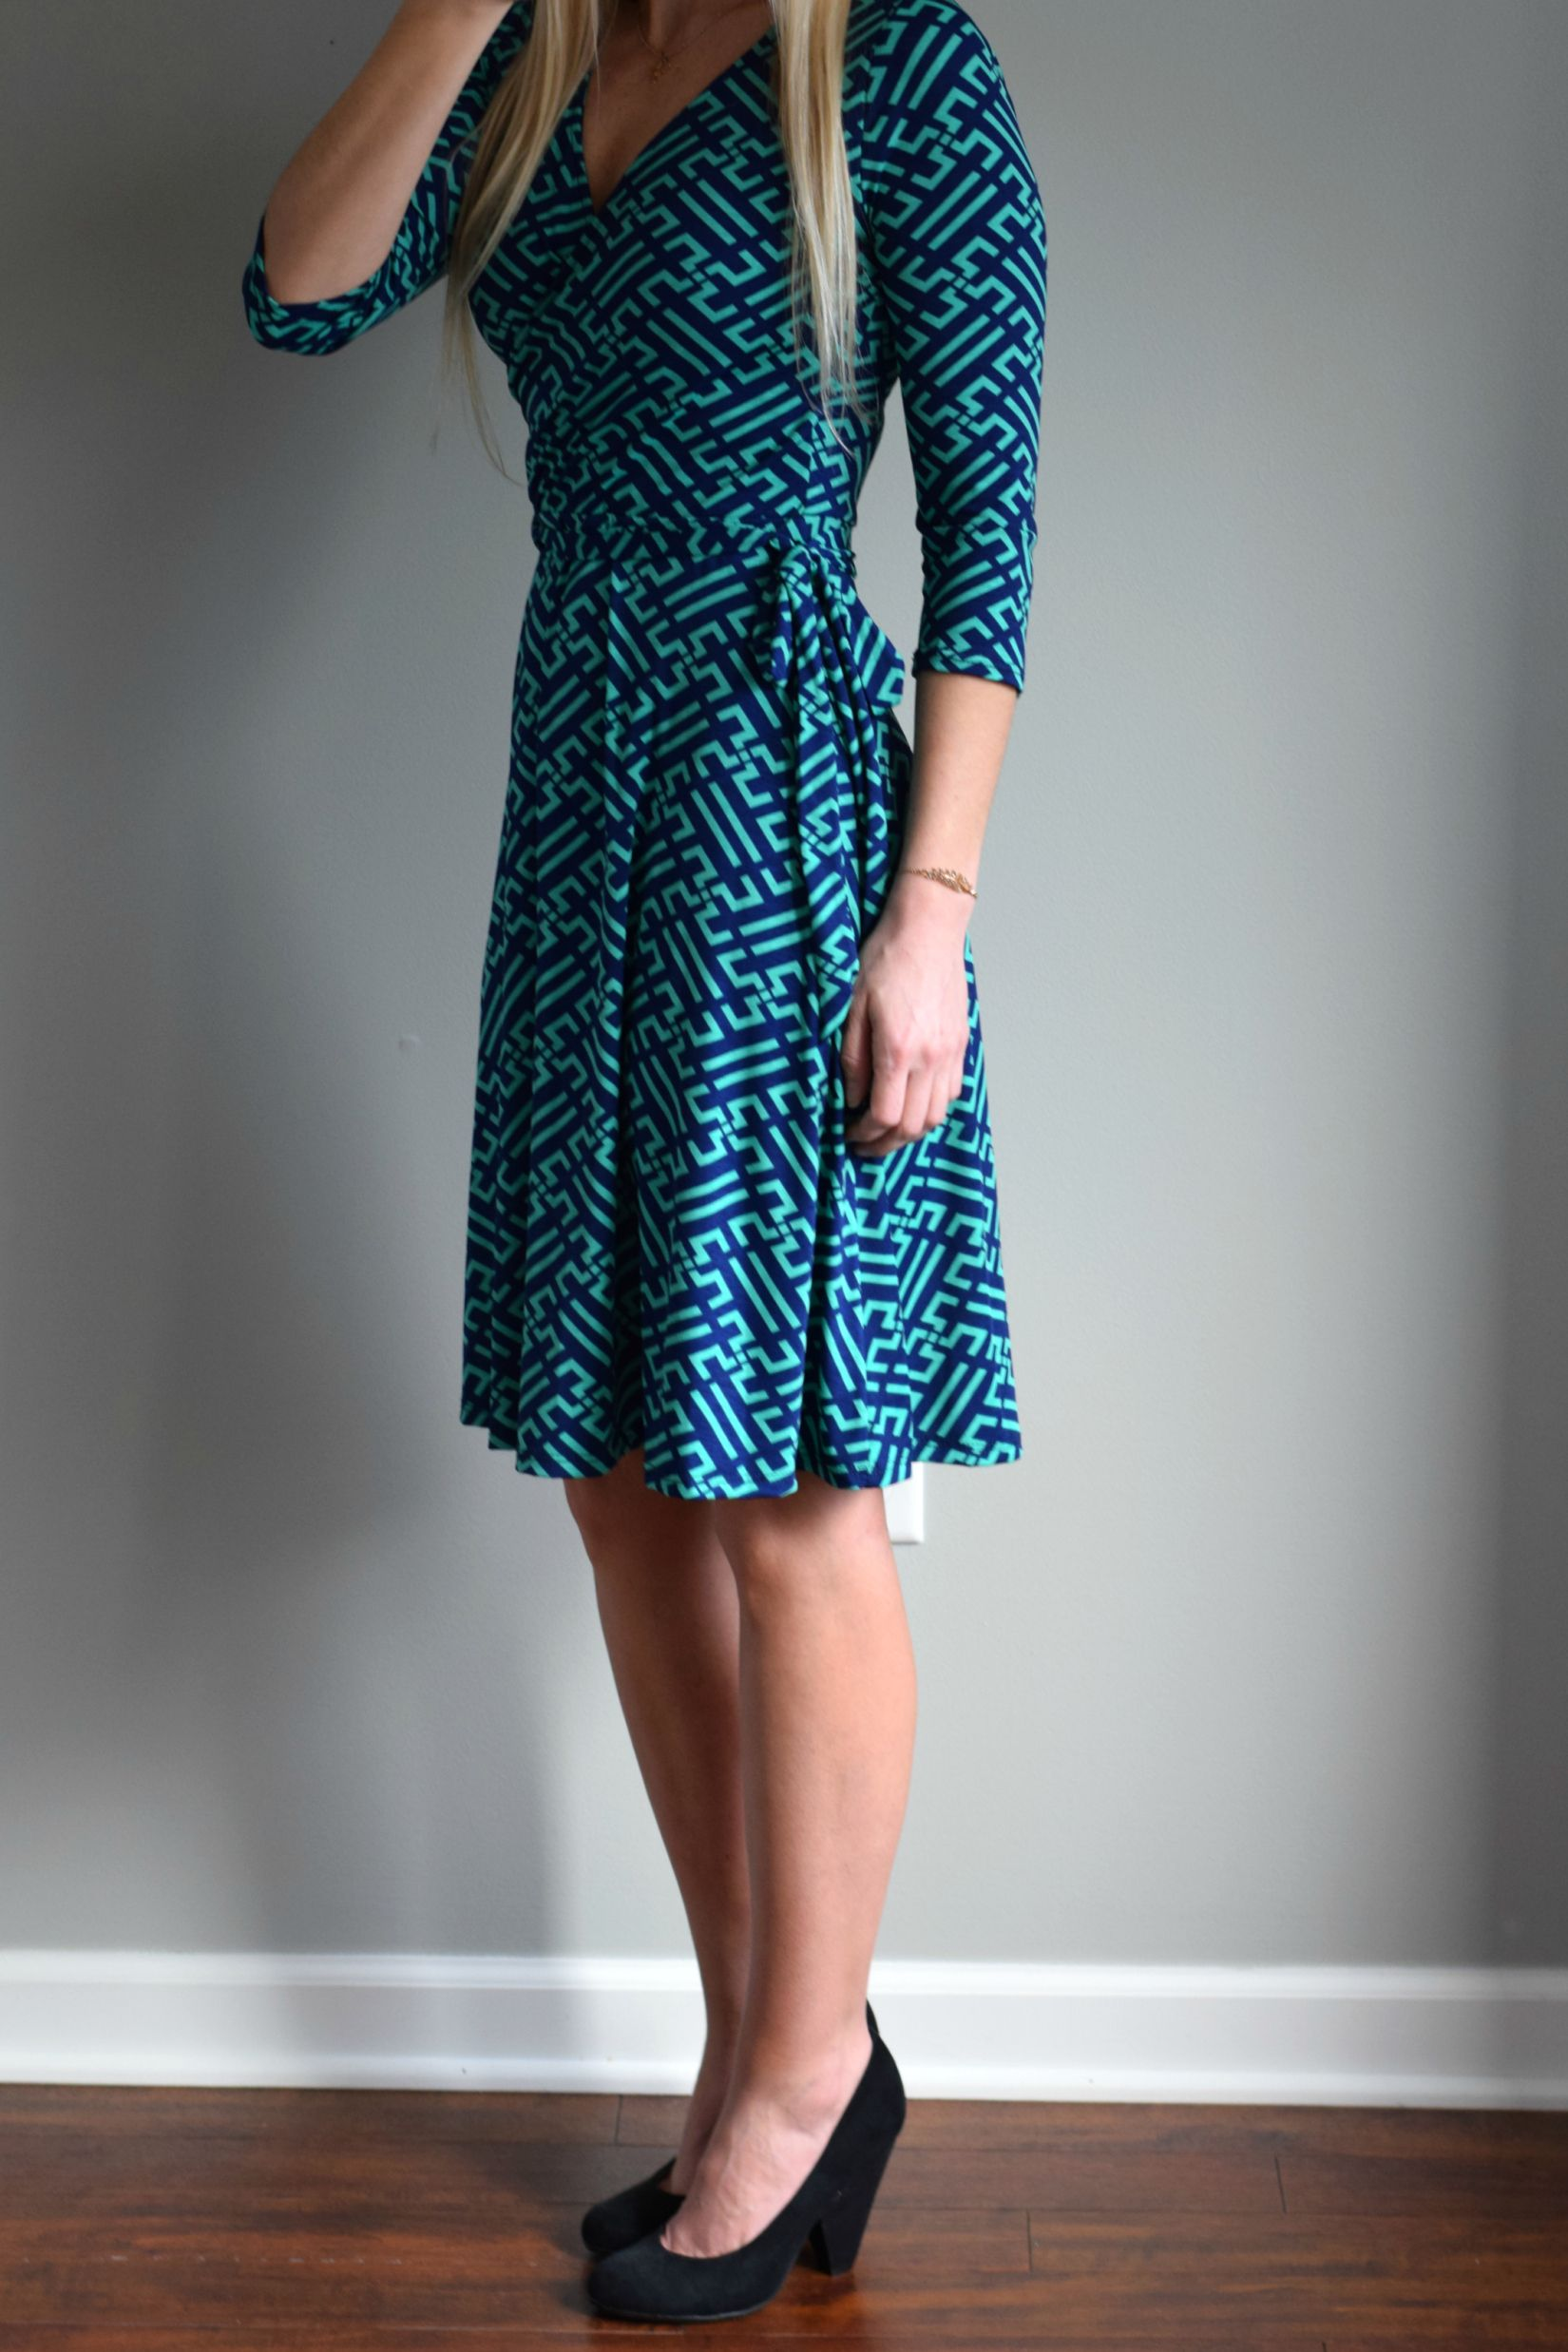 b5419438a0 I own and love this dress 41 Hawthorn Renesme Graphic Print Faux Wrap Dress  because the